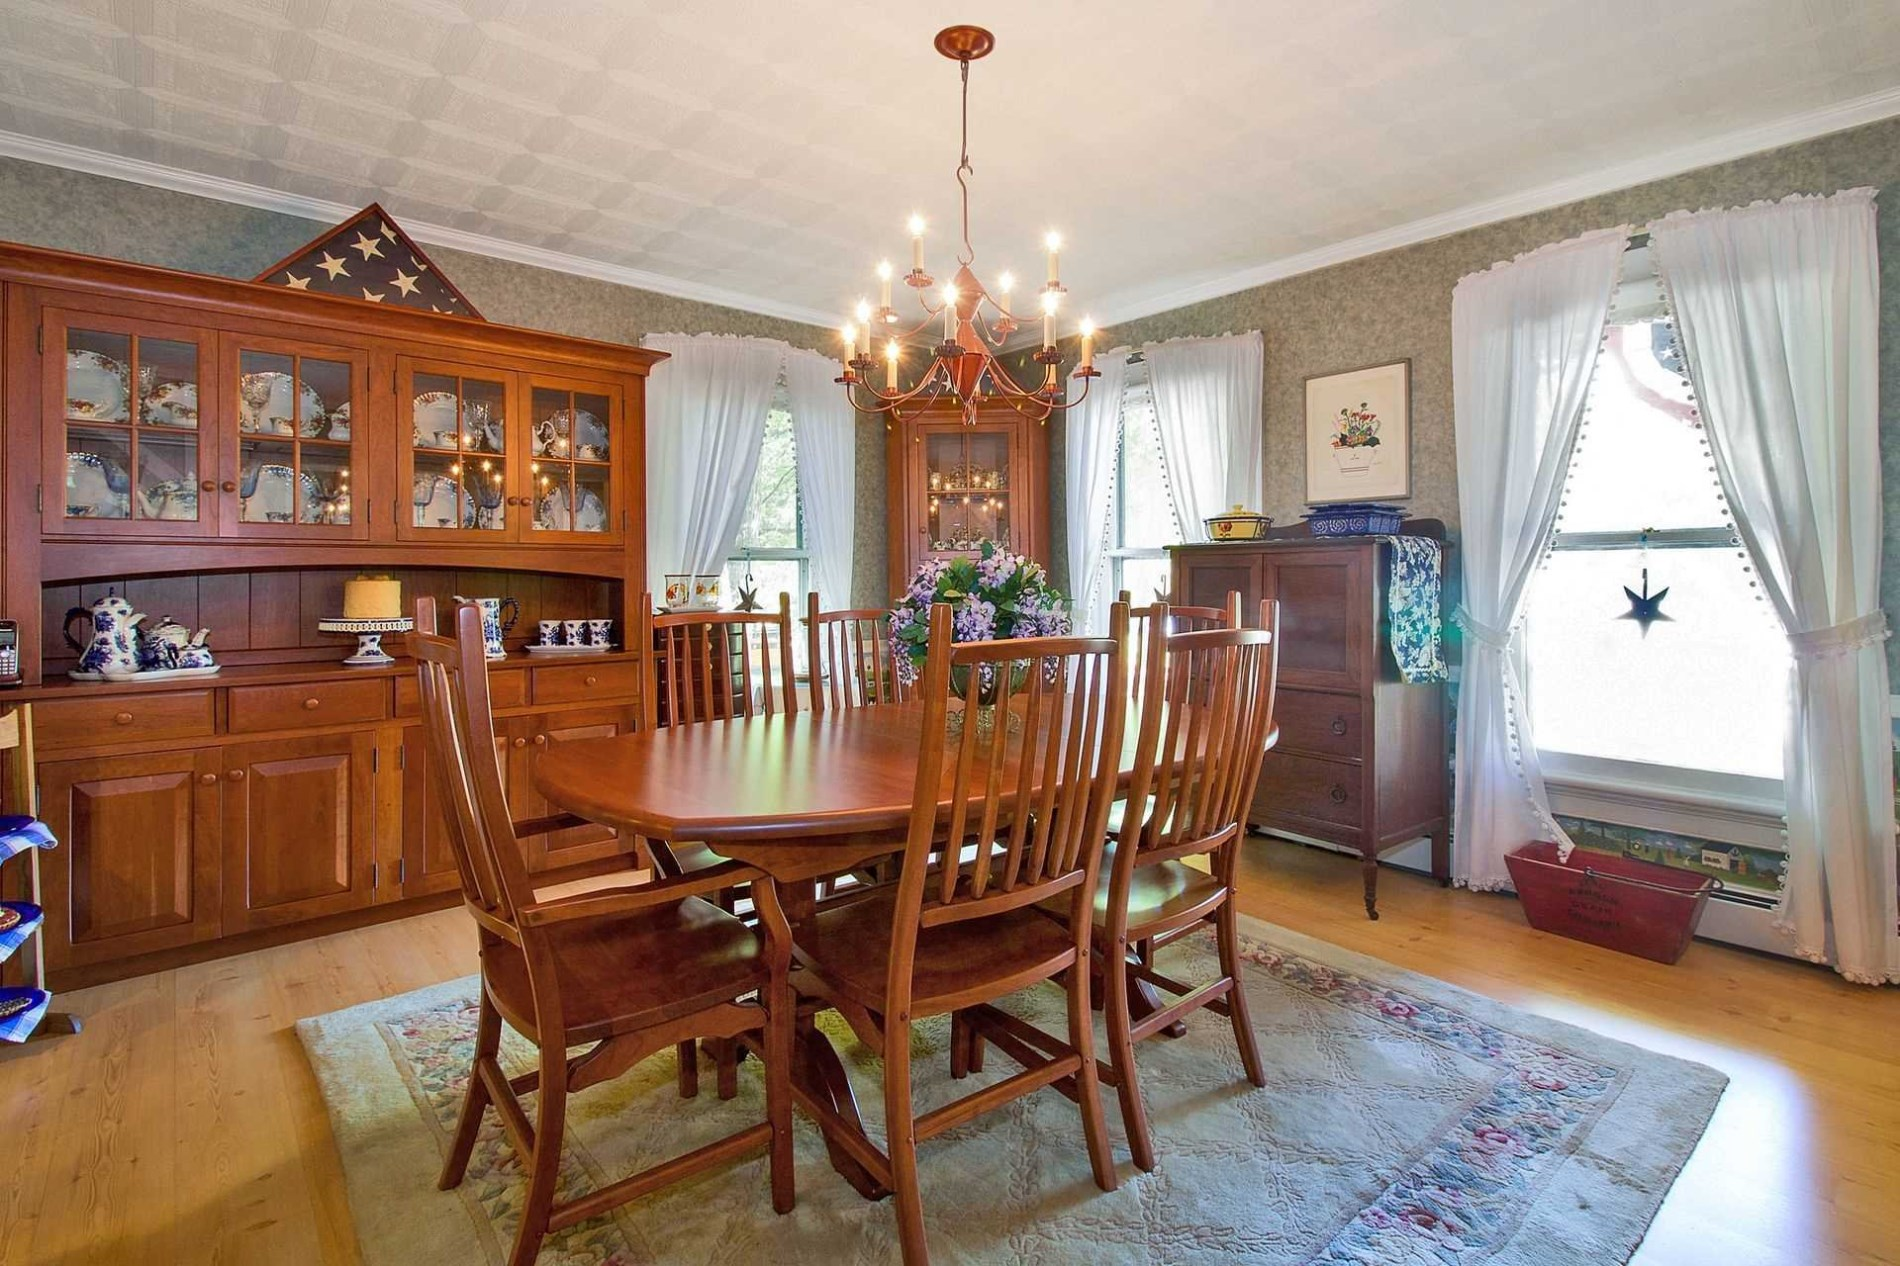 Check Out The Adjacent Dining Room Oh Wait Make That Two Rooms With A Smaller Breakfast Nook In Kitchen